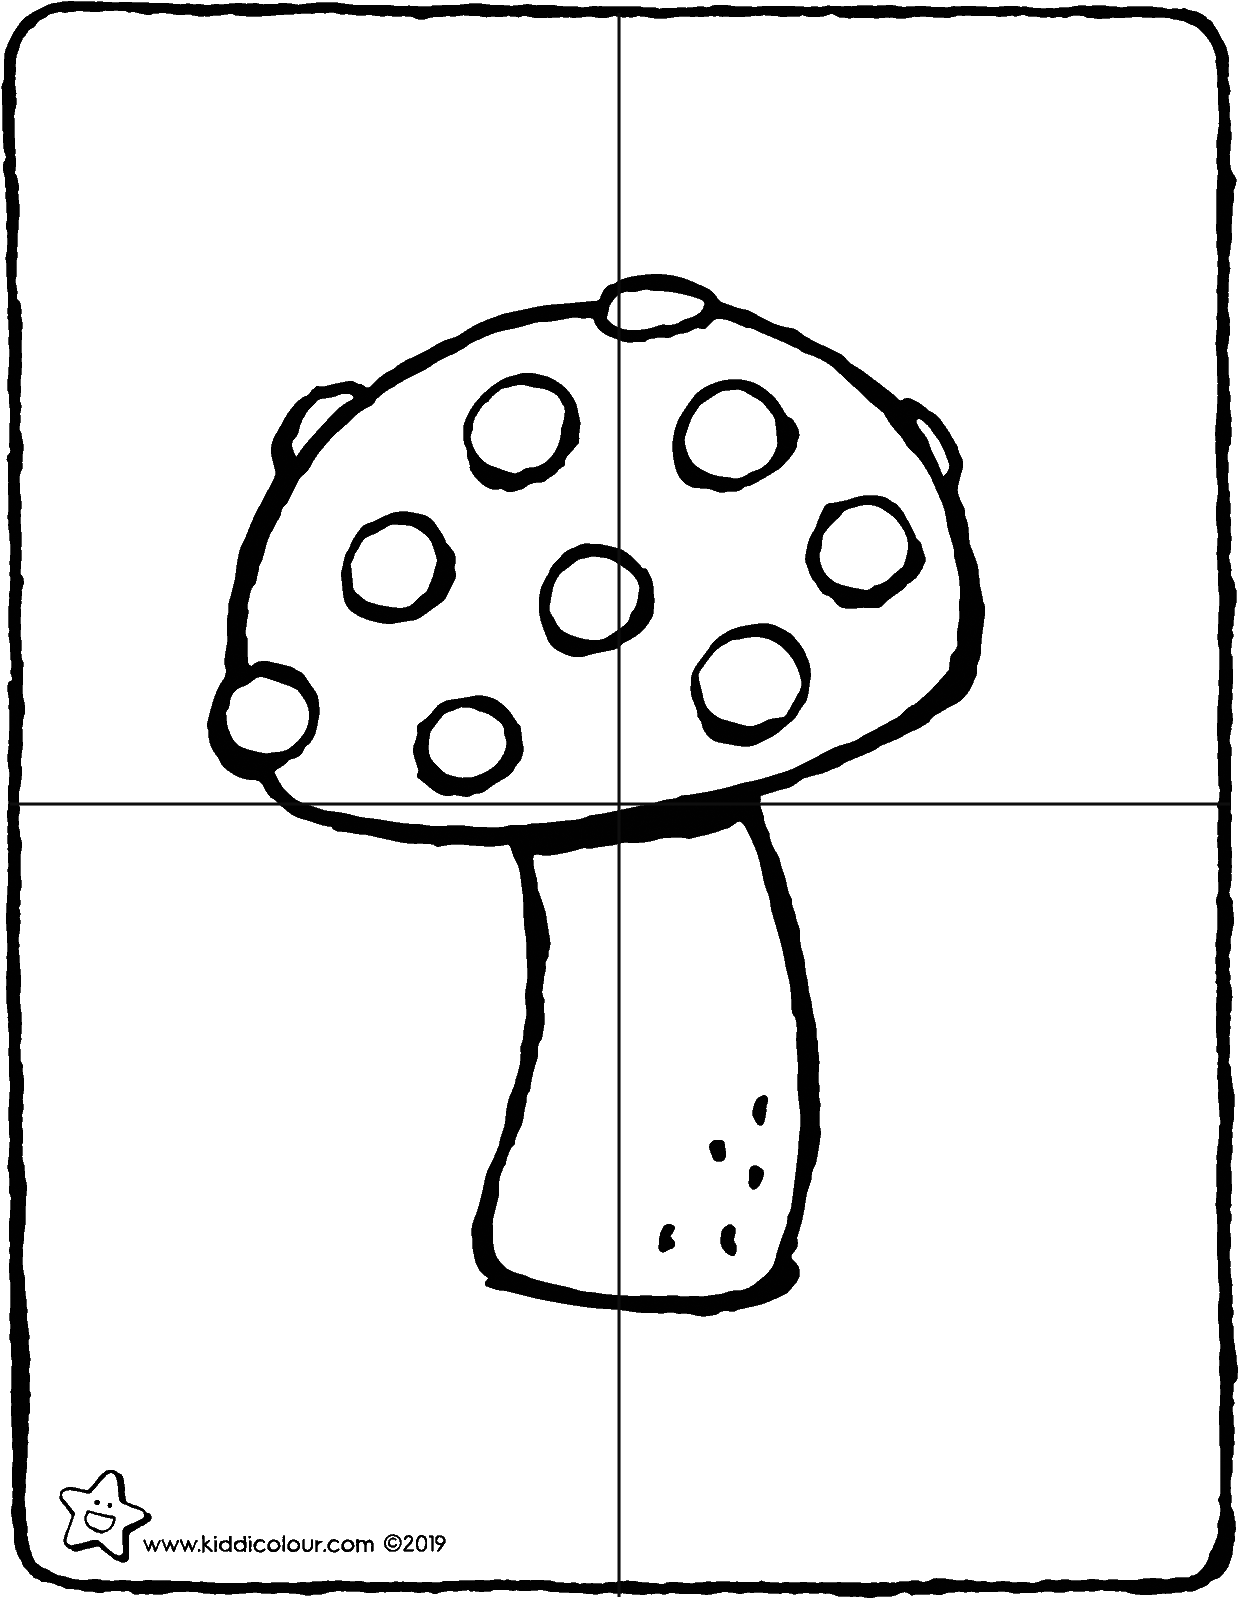 let's make a toadstool puzzle colouring page drawing picture 01V